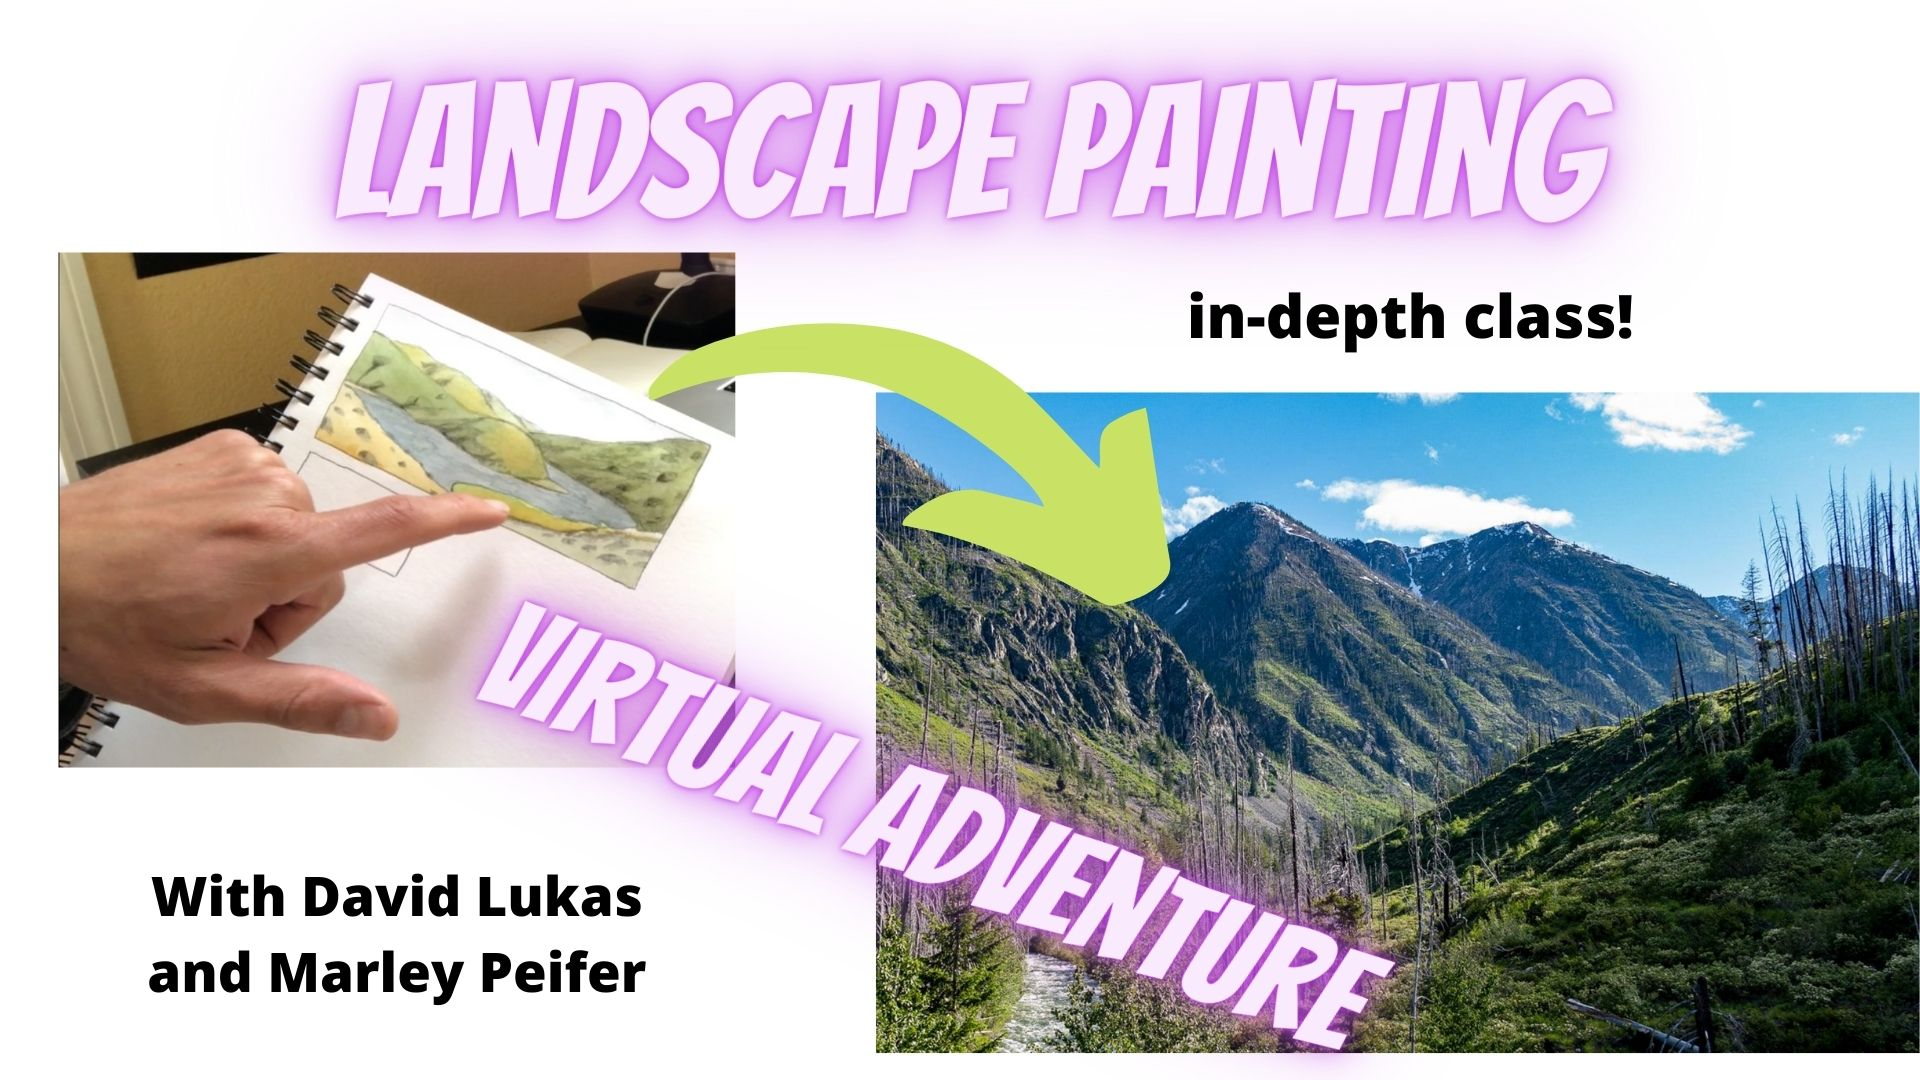 Landscape Painting Class with Marley Peifer and Daivd Lukas